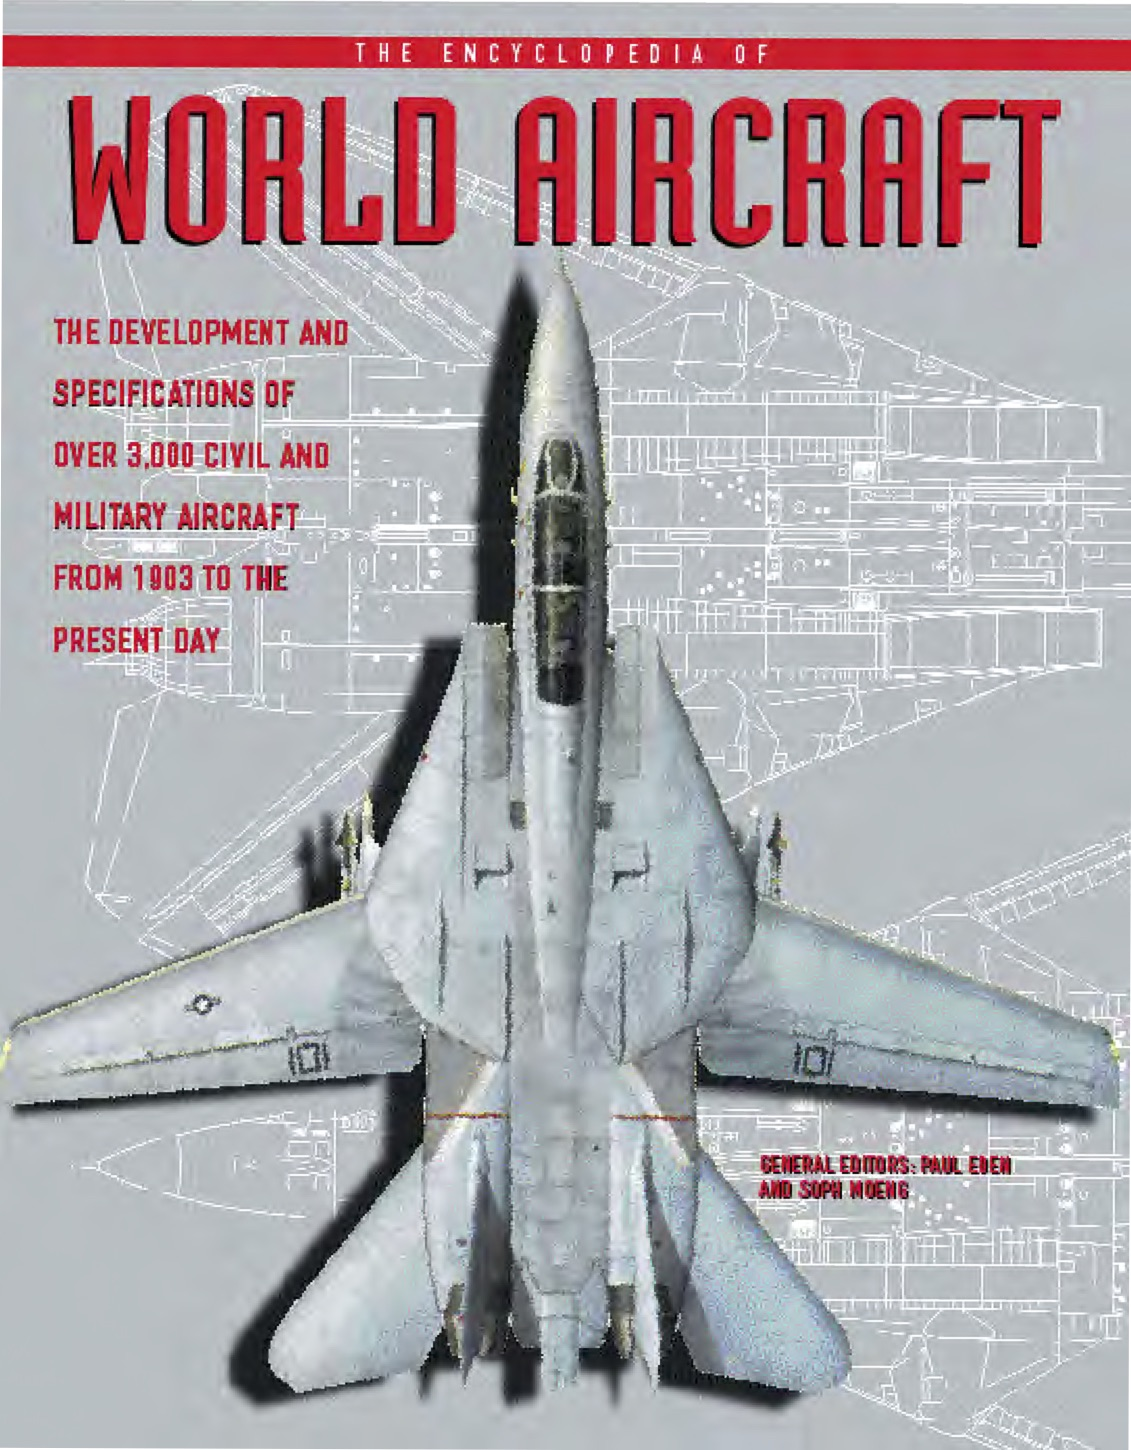 The Encyclopedia of World Aircraft